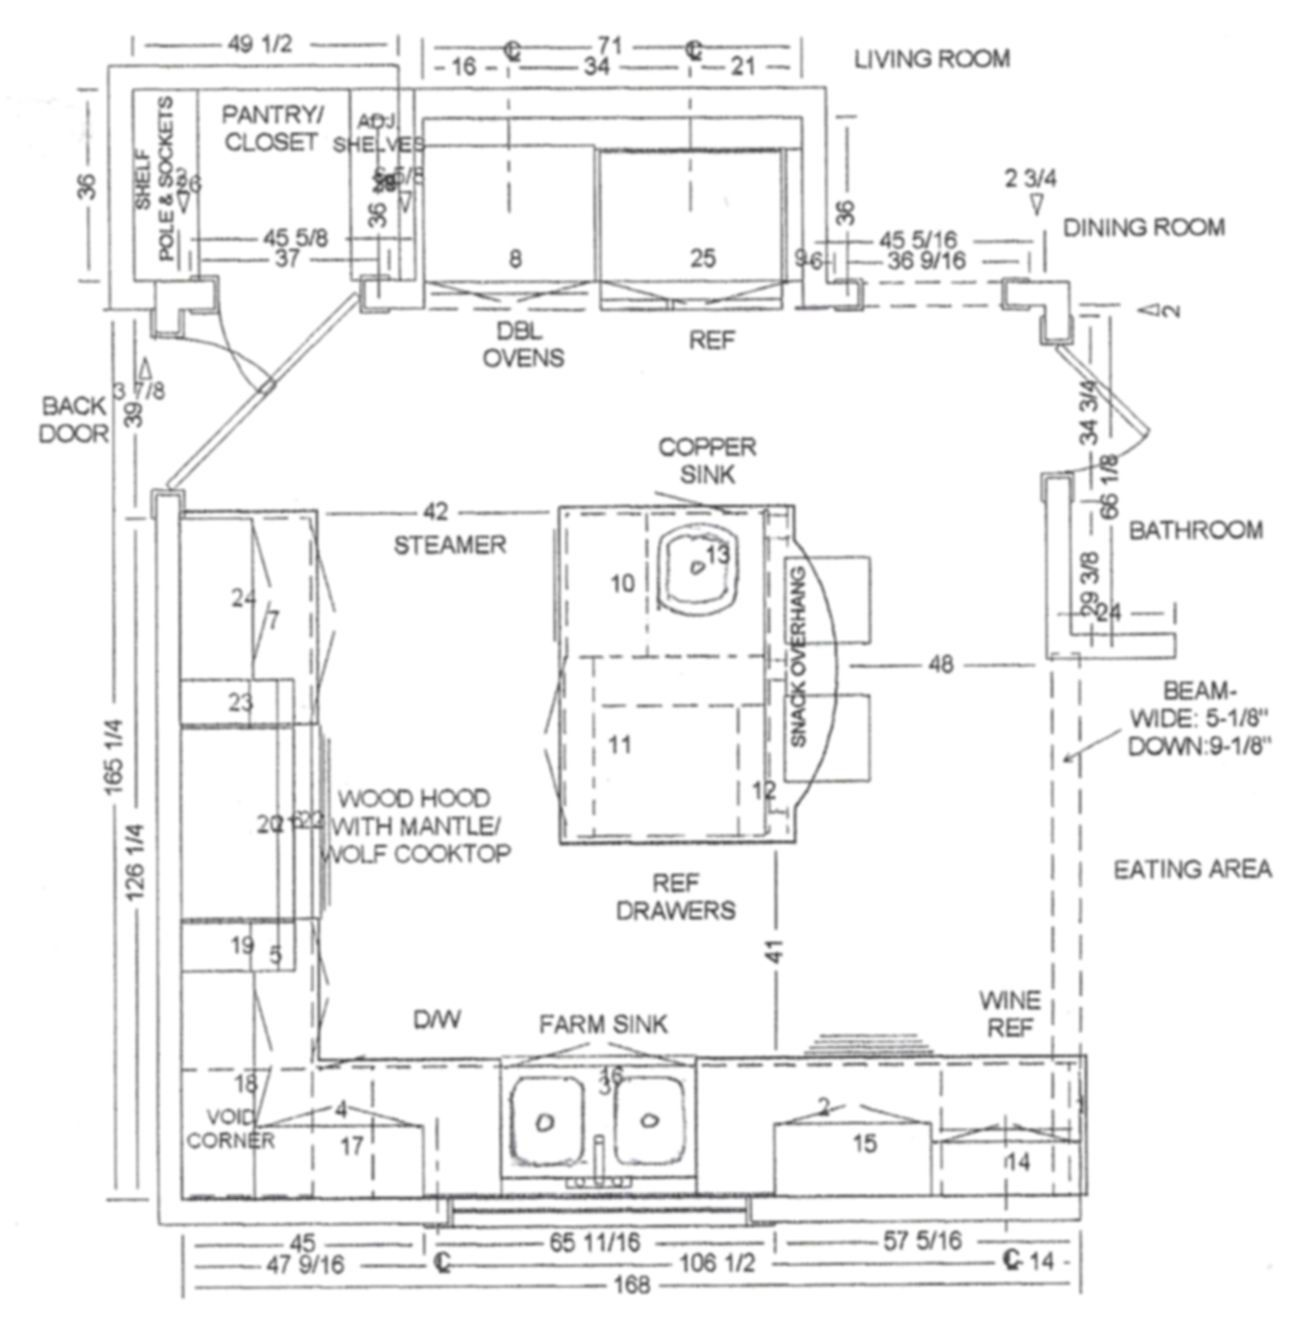 Kitchen Cabinets Cad Drawings: Scan0016.jpg (1304×1336)